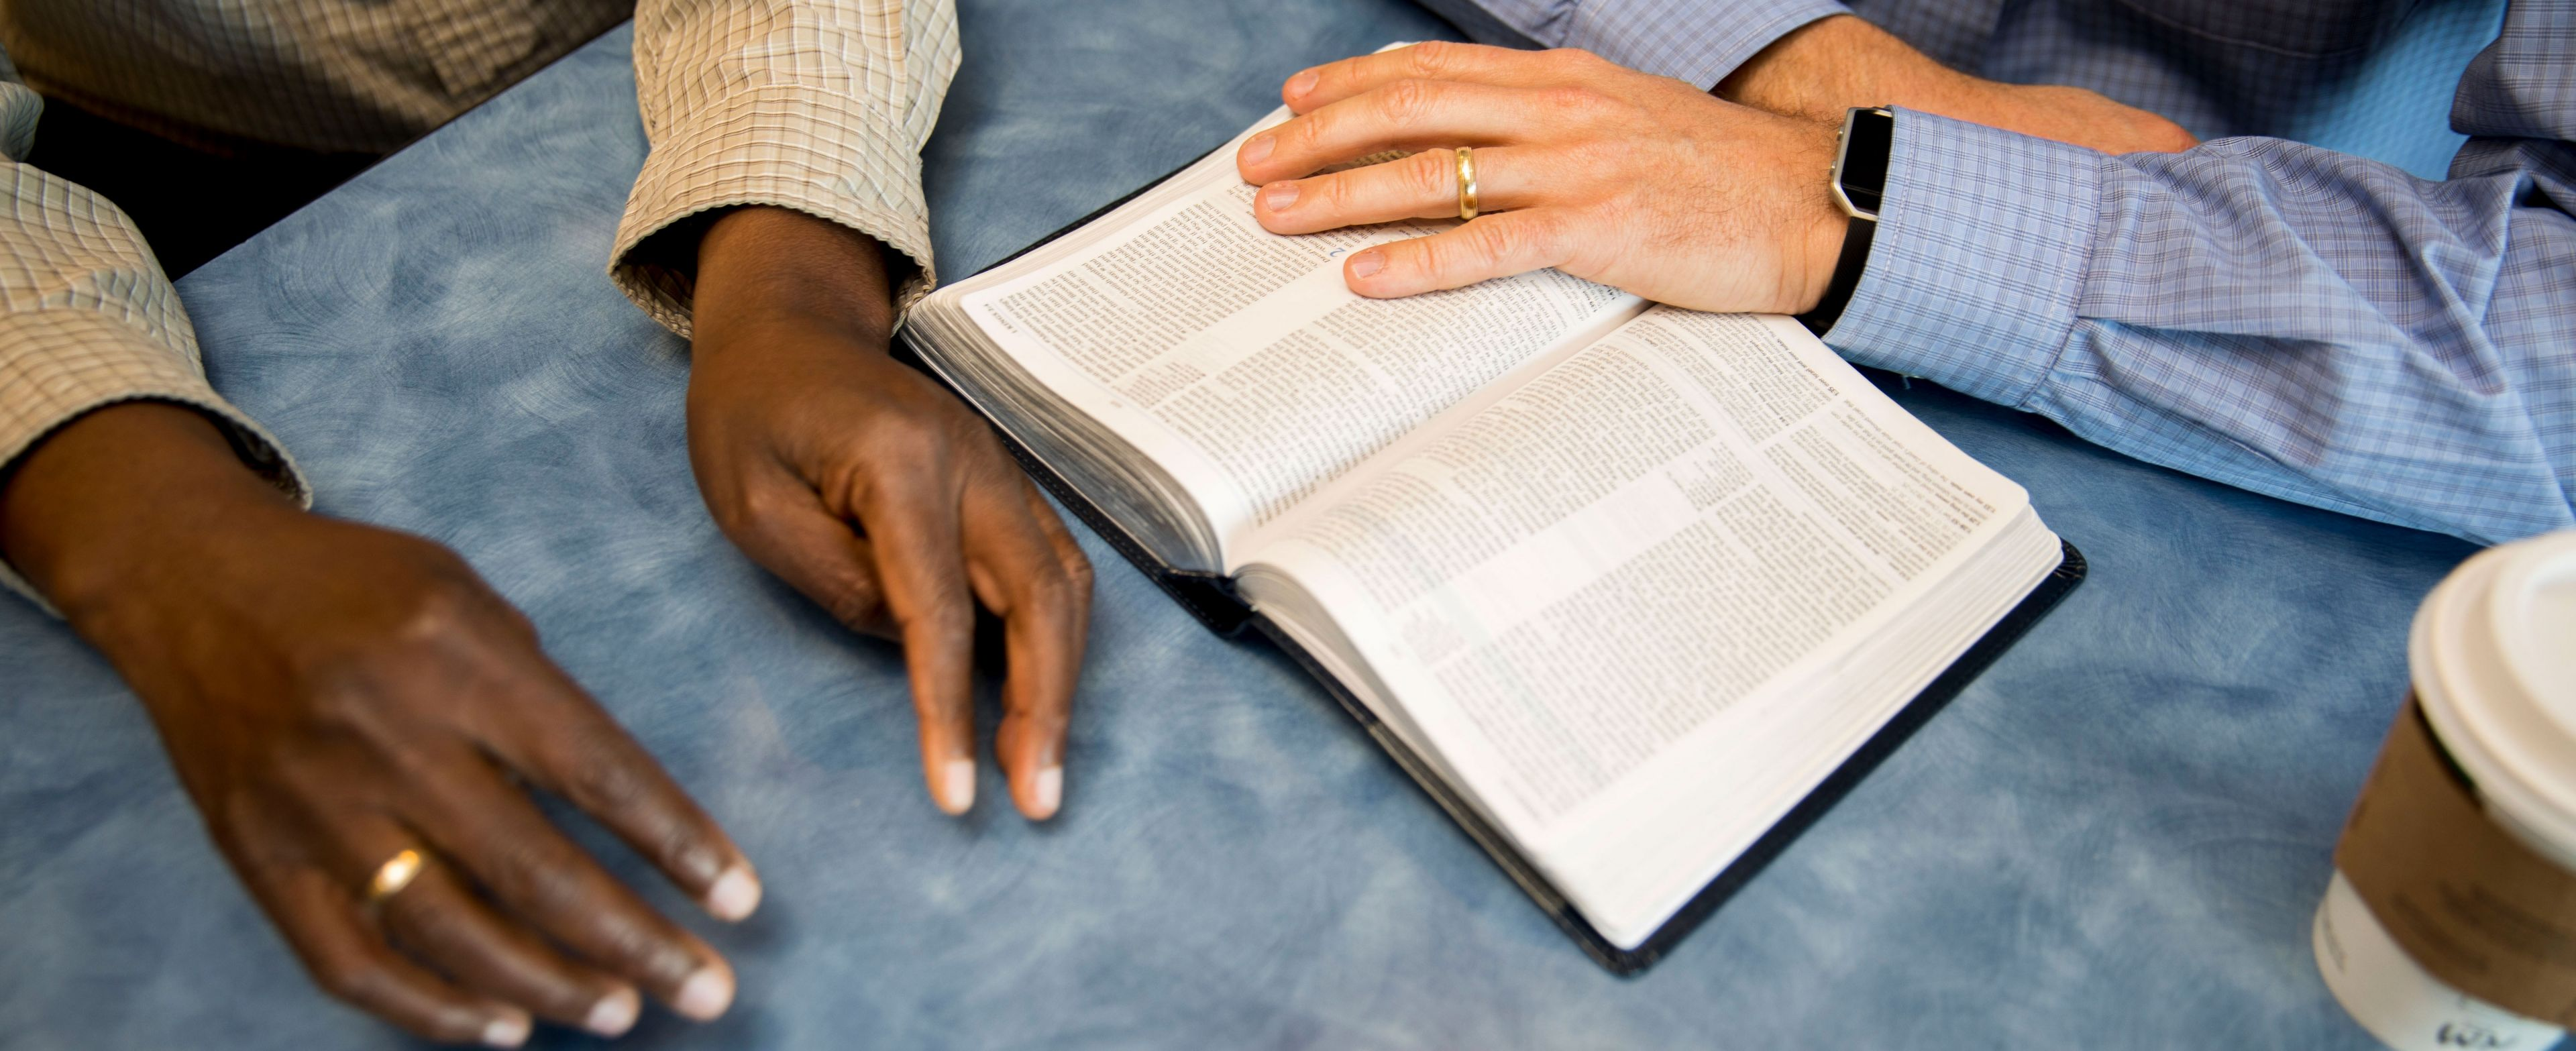 Bachelor's Degree In Christian Leadership And Church Ministries Biblical Studies Degree